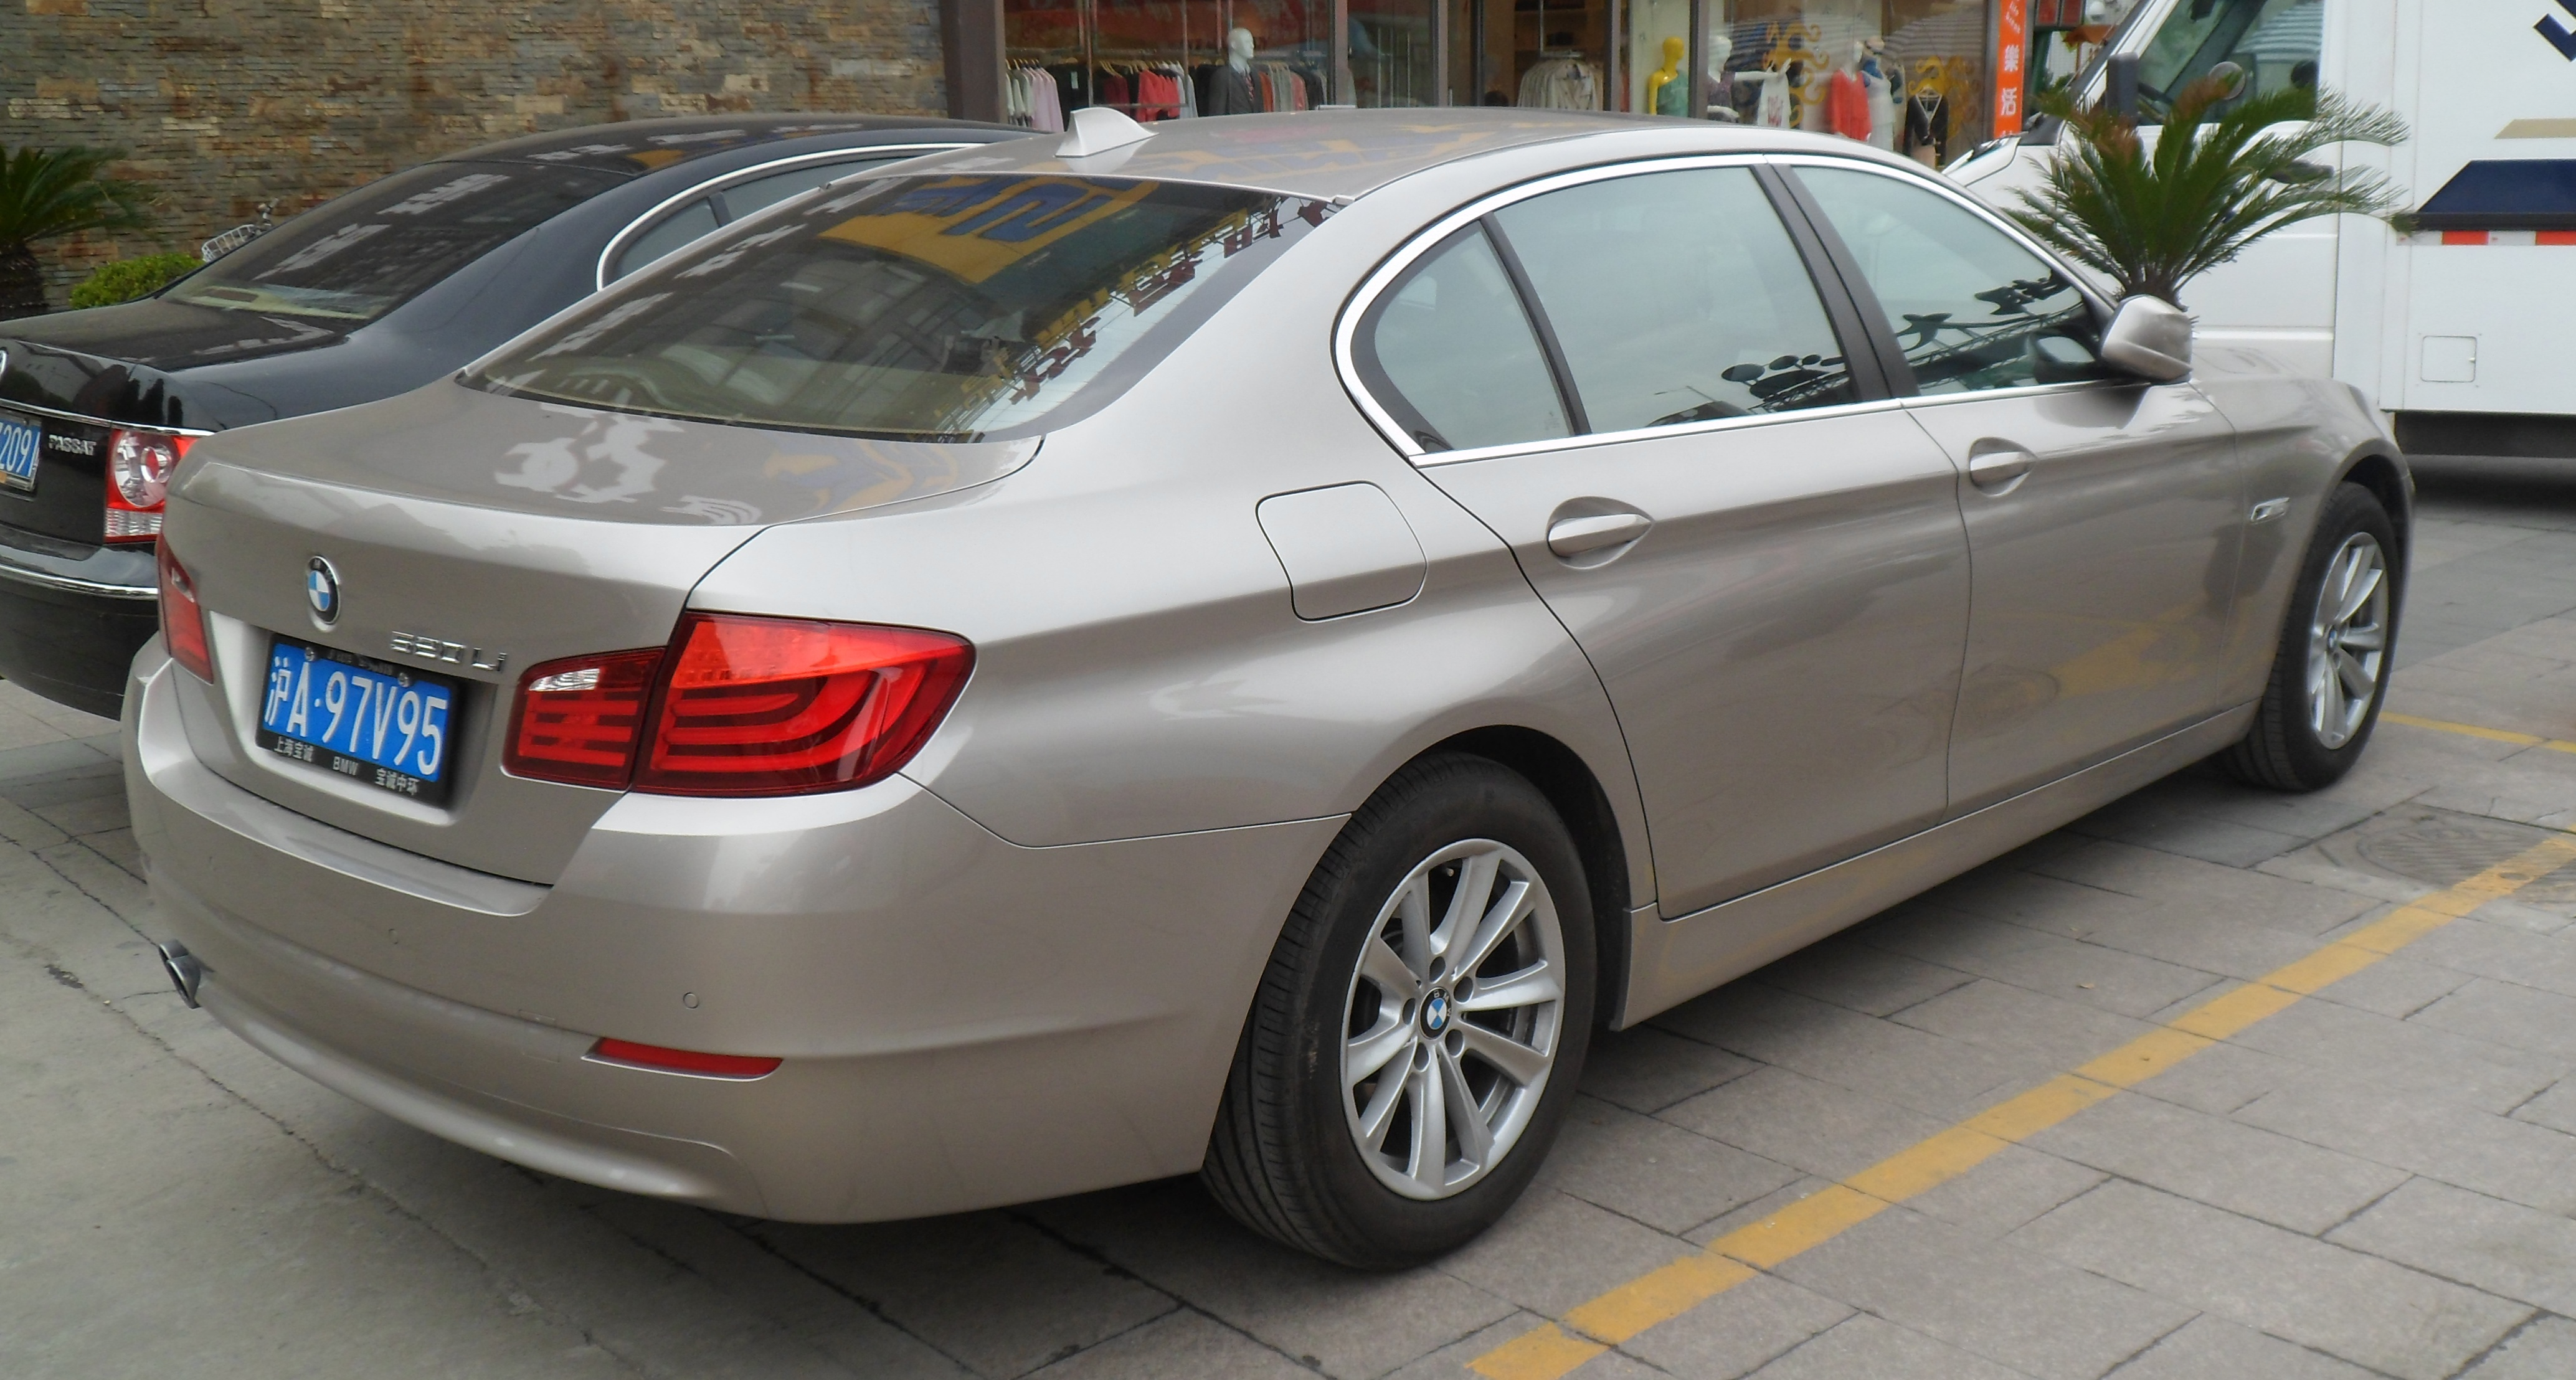 Bmw 530d gt review uk dating 1